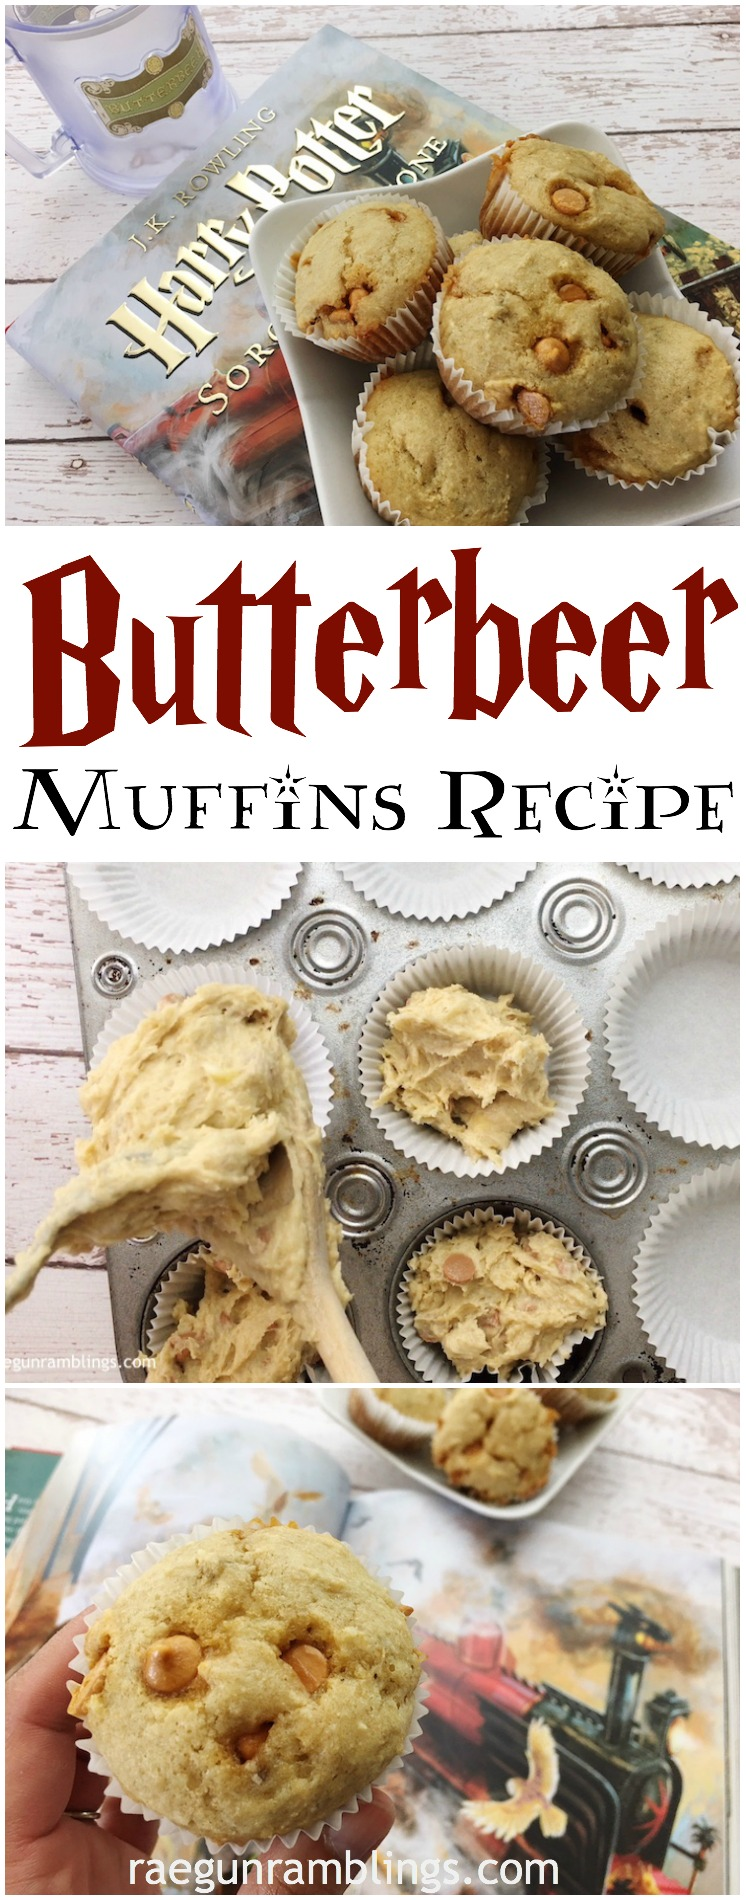 drooling over these banana butterbeer muffins. just made the recipe and will be making tons more